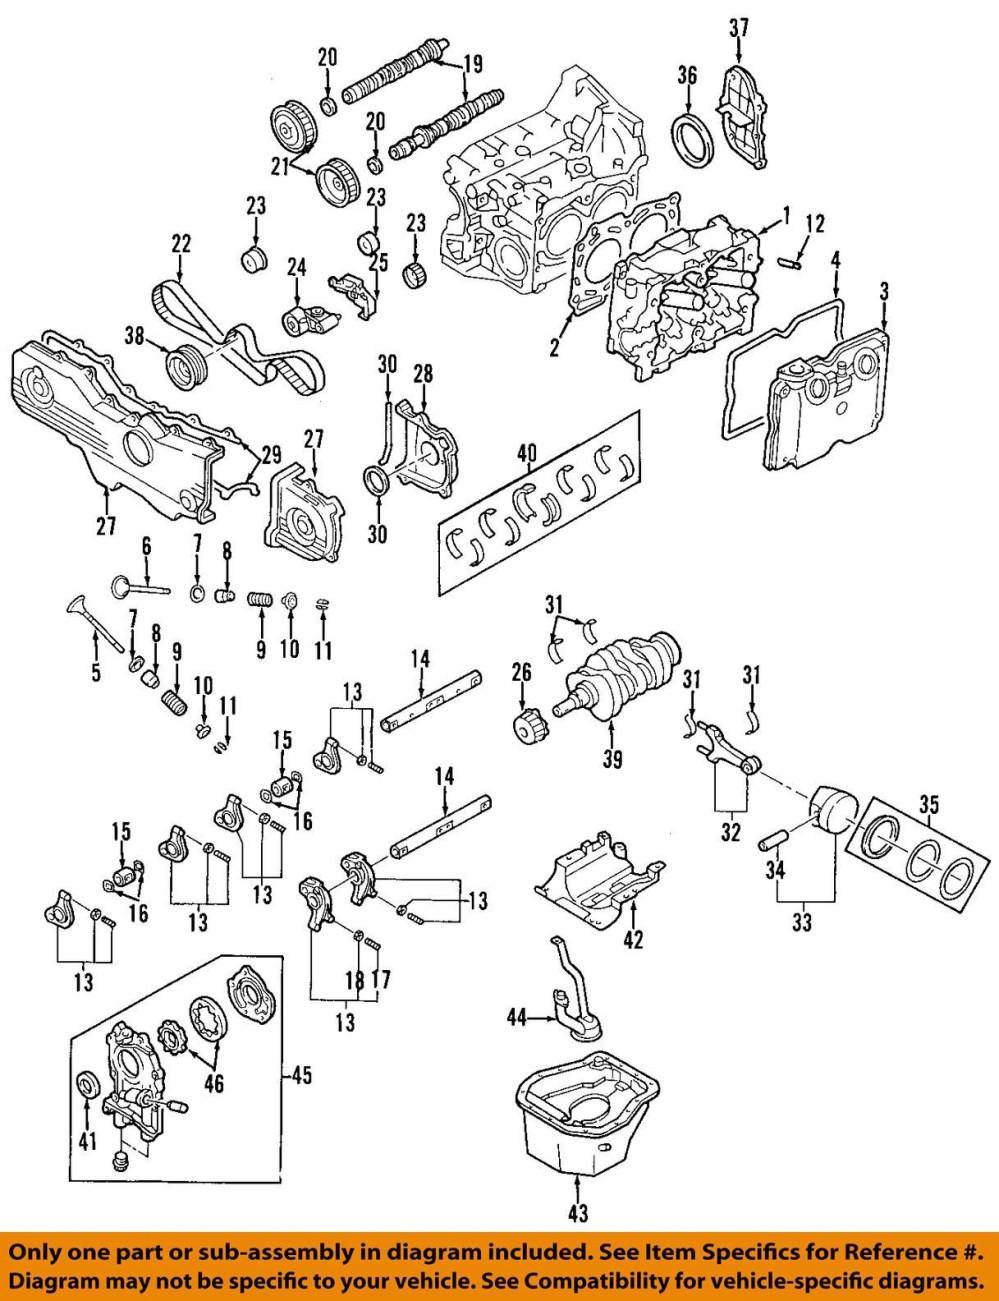 medium resolution of ej253 engine diagram completed wiring diagrams 1995 subaru legacy engine diagram subaru 2 2 engine oil diagram